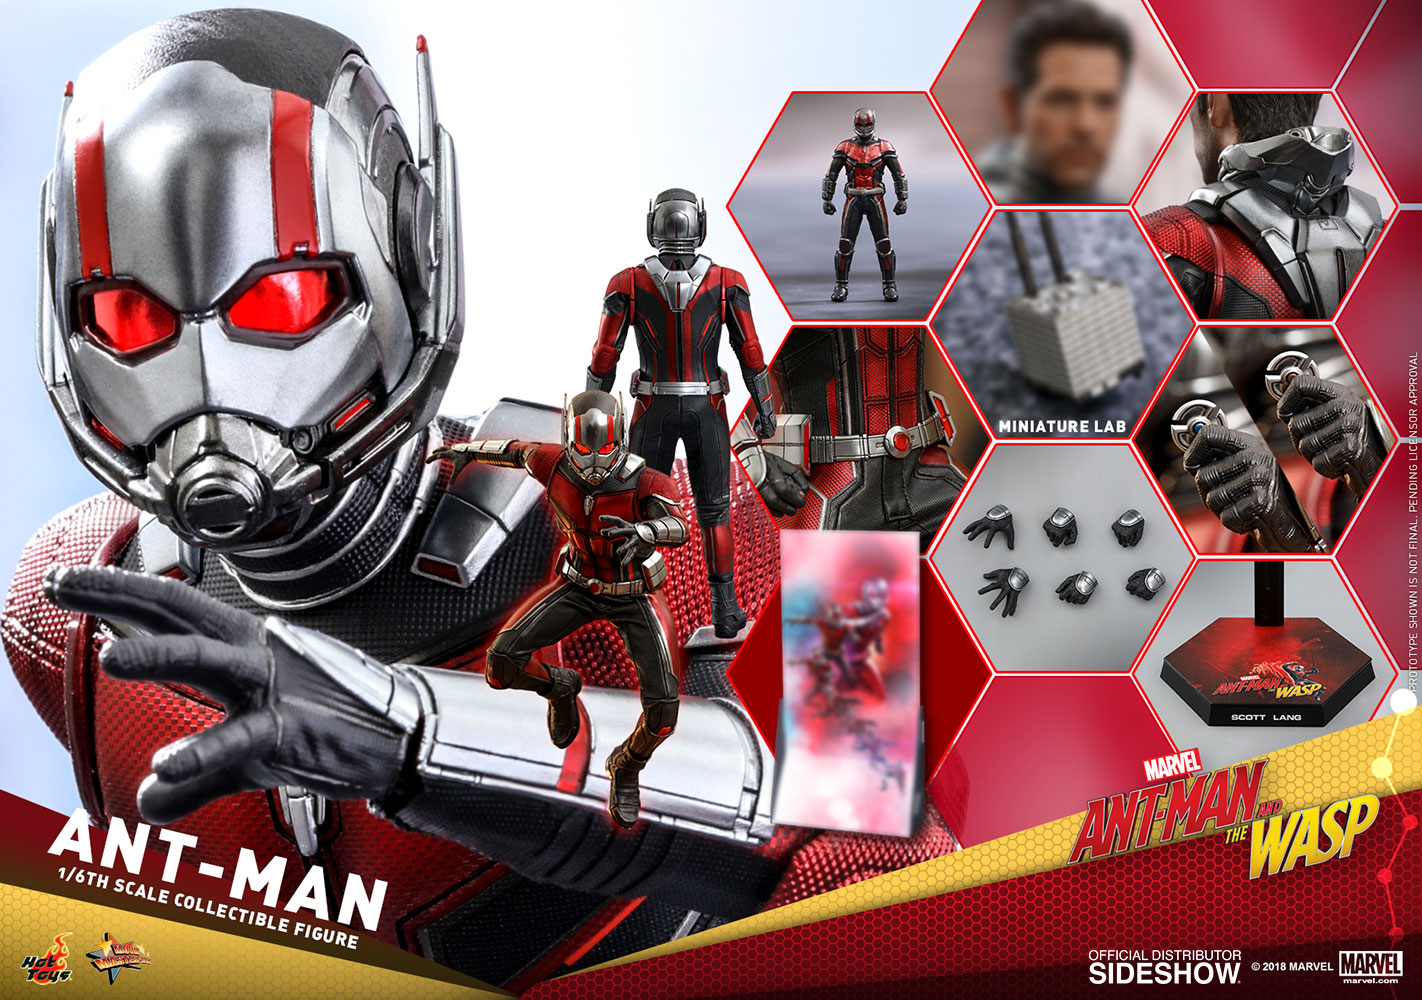 [Pre-Order] Ant-Man and the Wasp - Ant-Man Movie Masterpiece